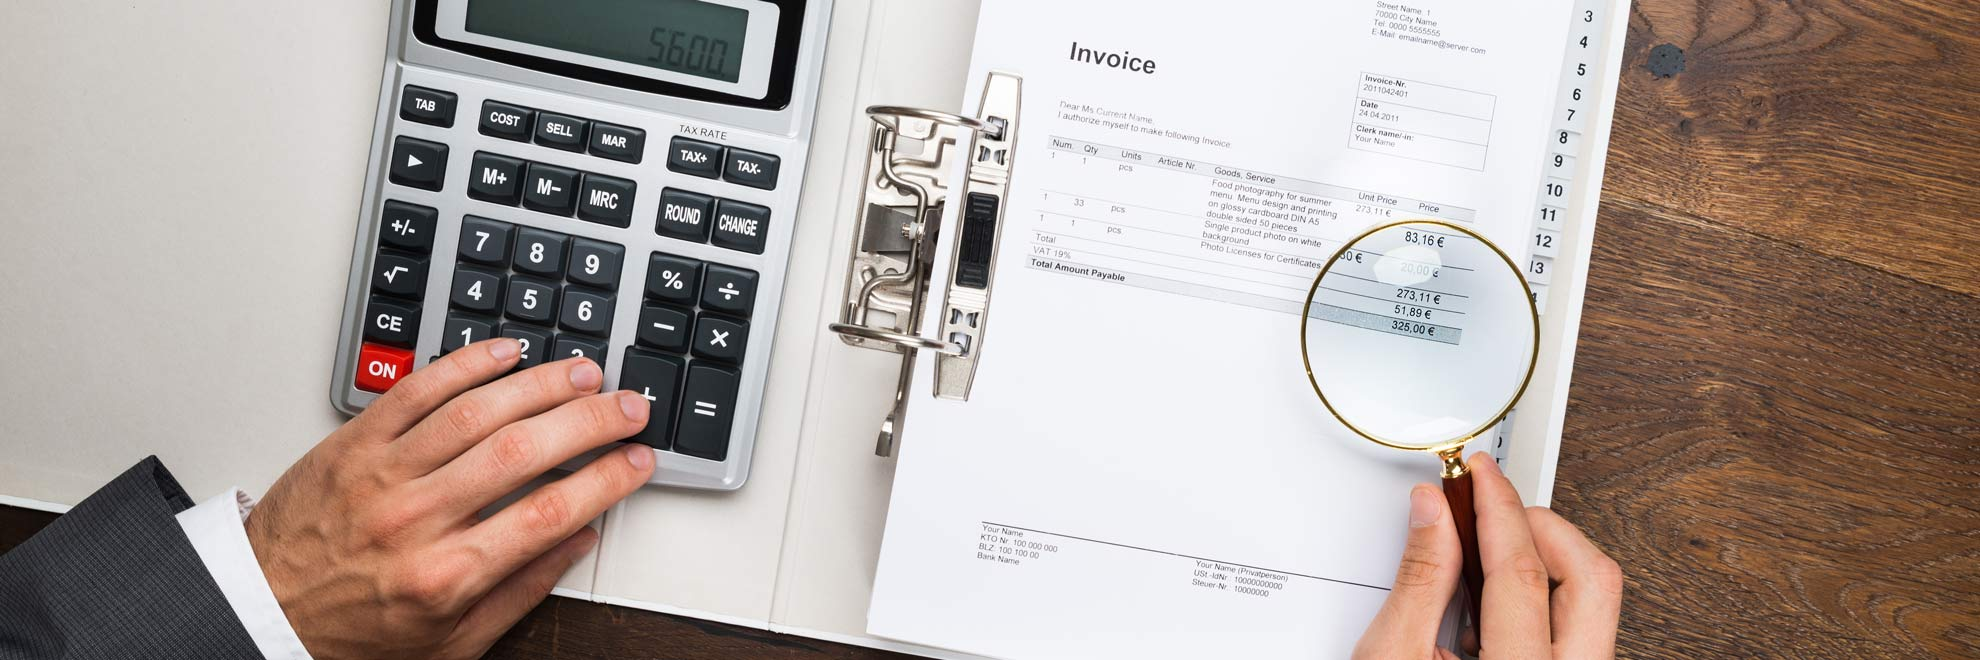 magnifying glass invoice